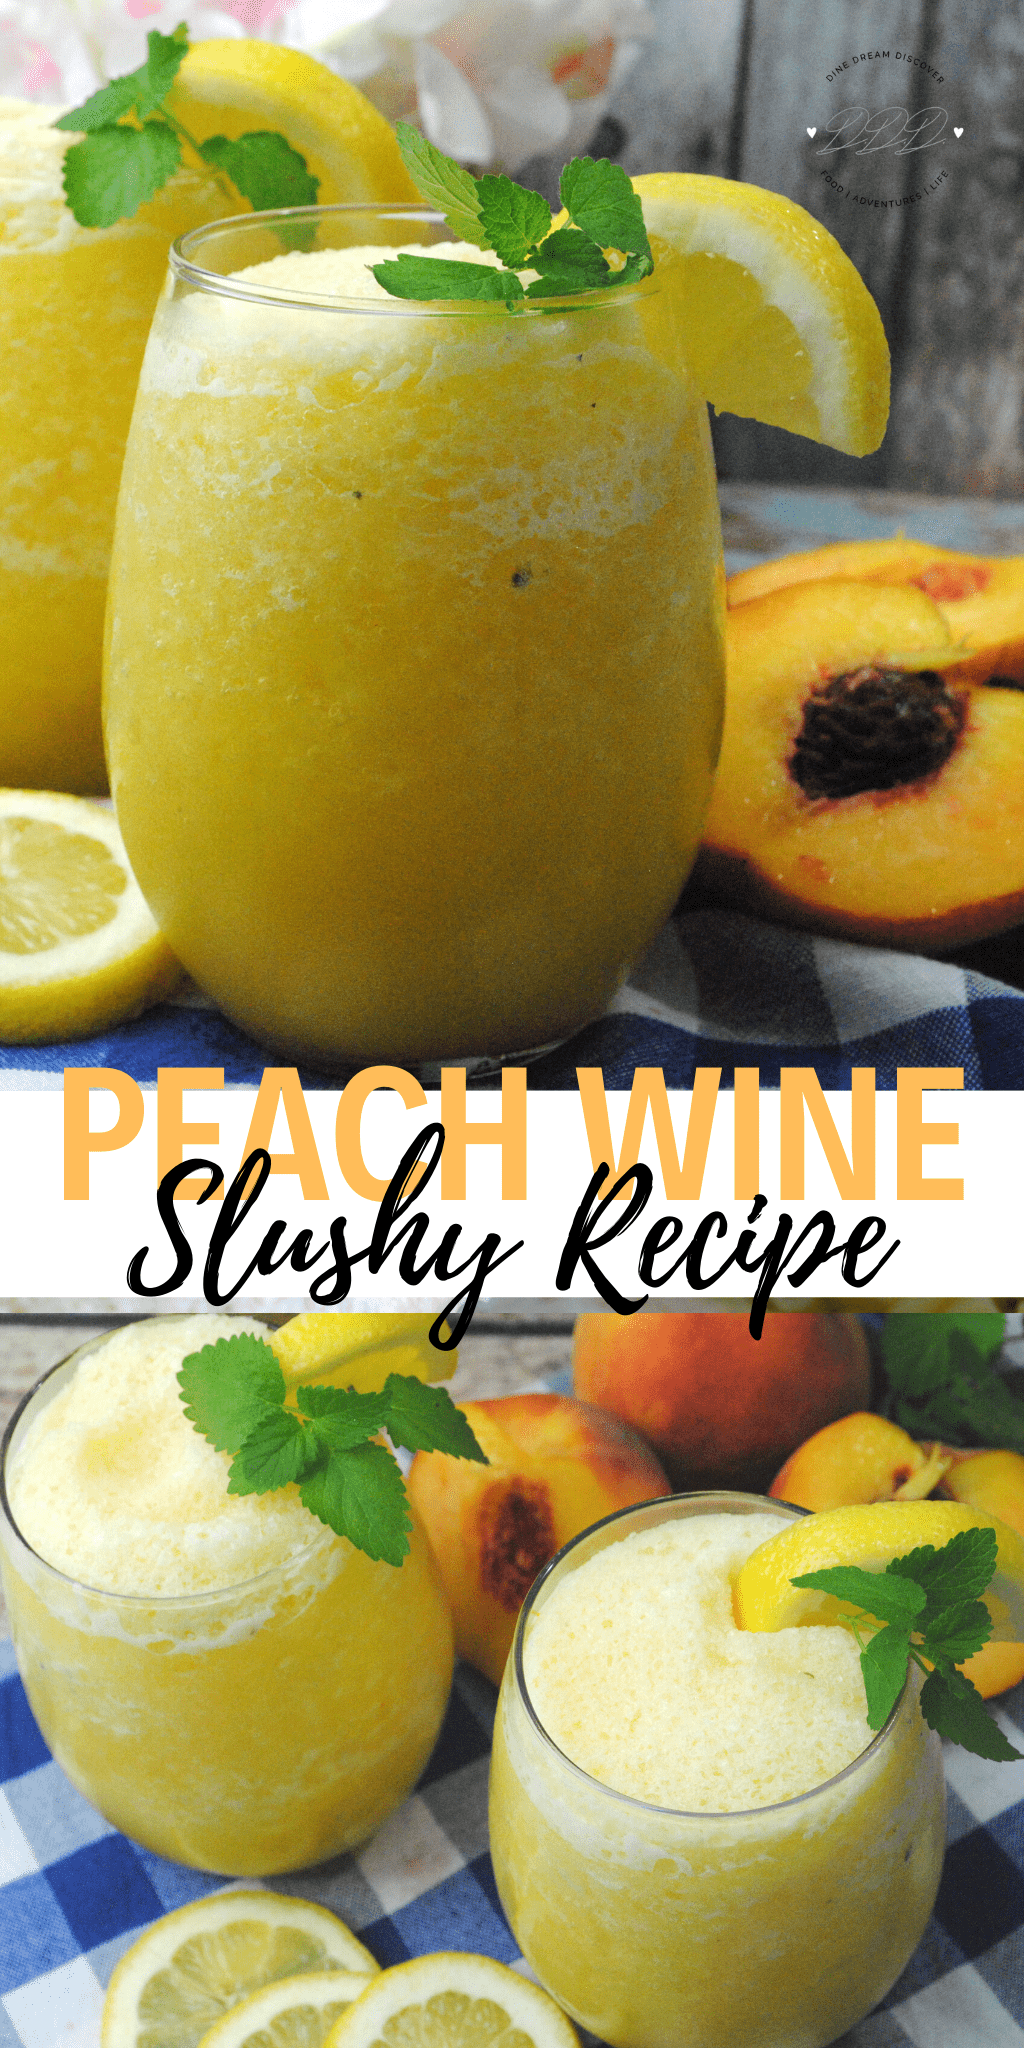 Peach Wine Slushy Recipe